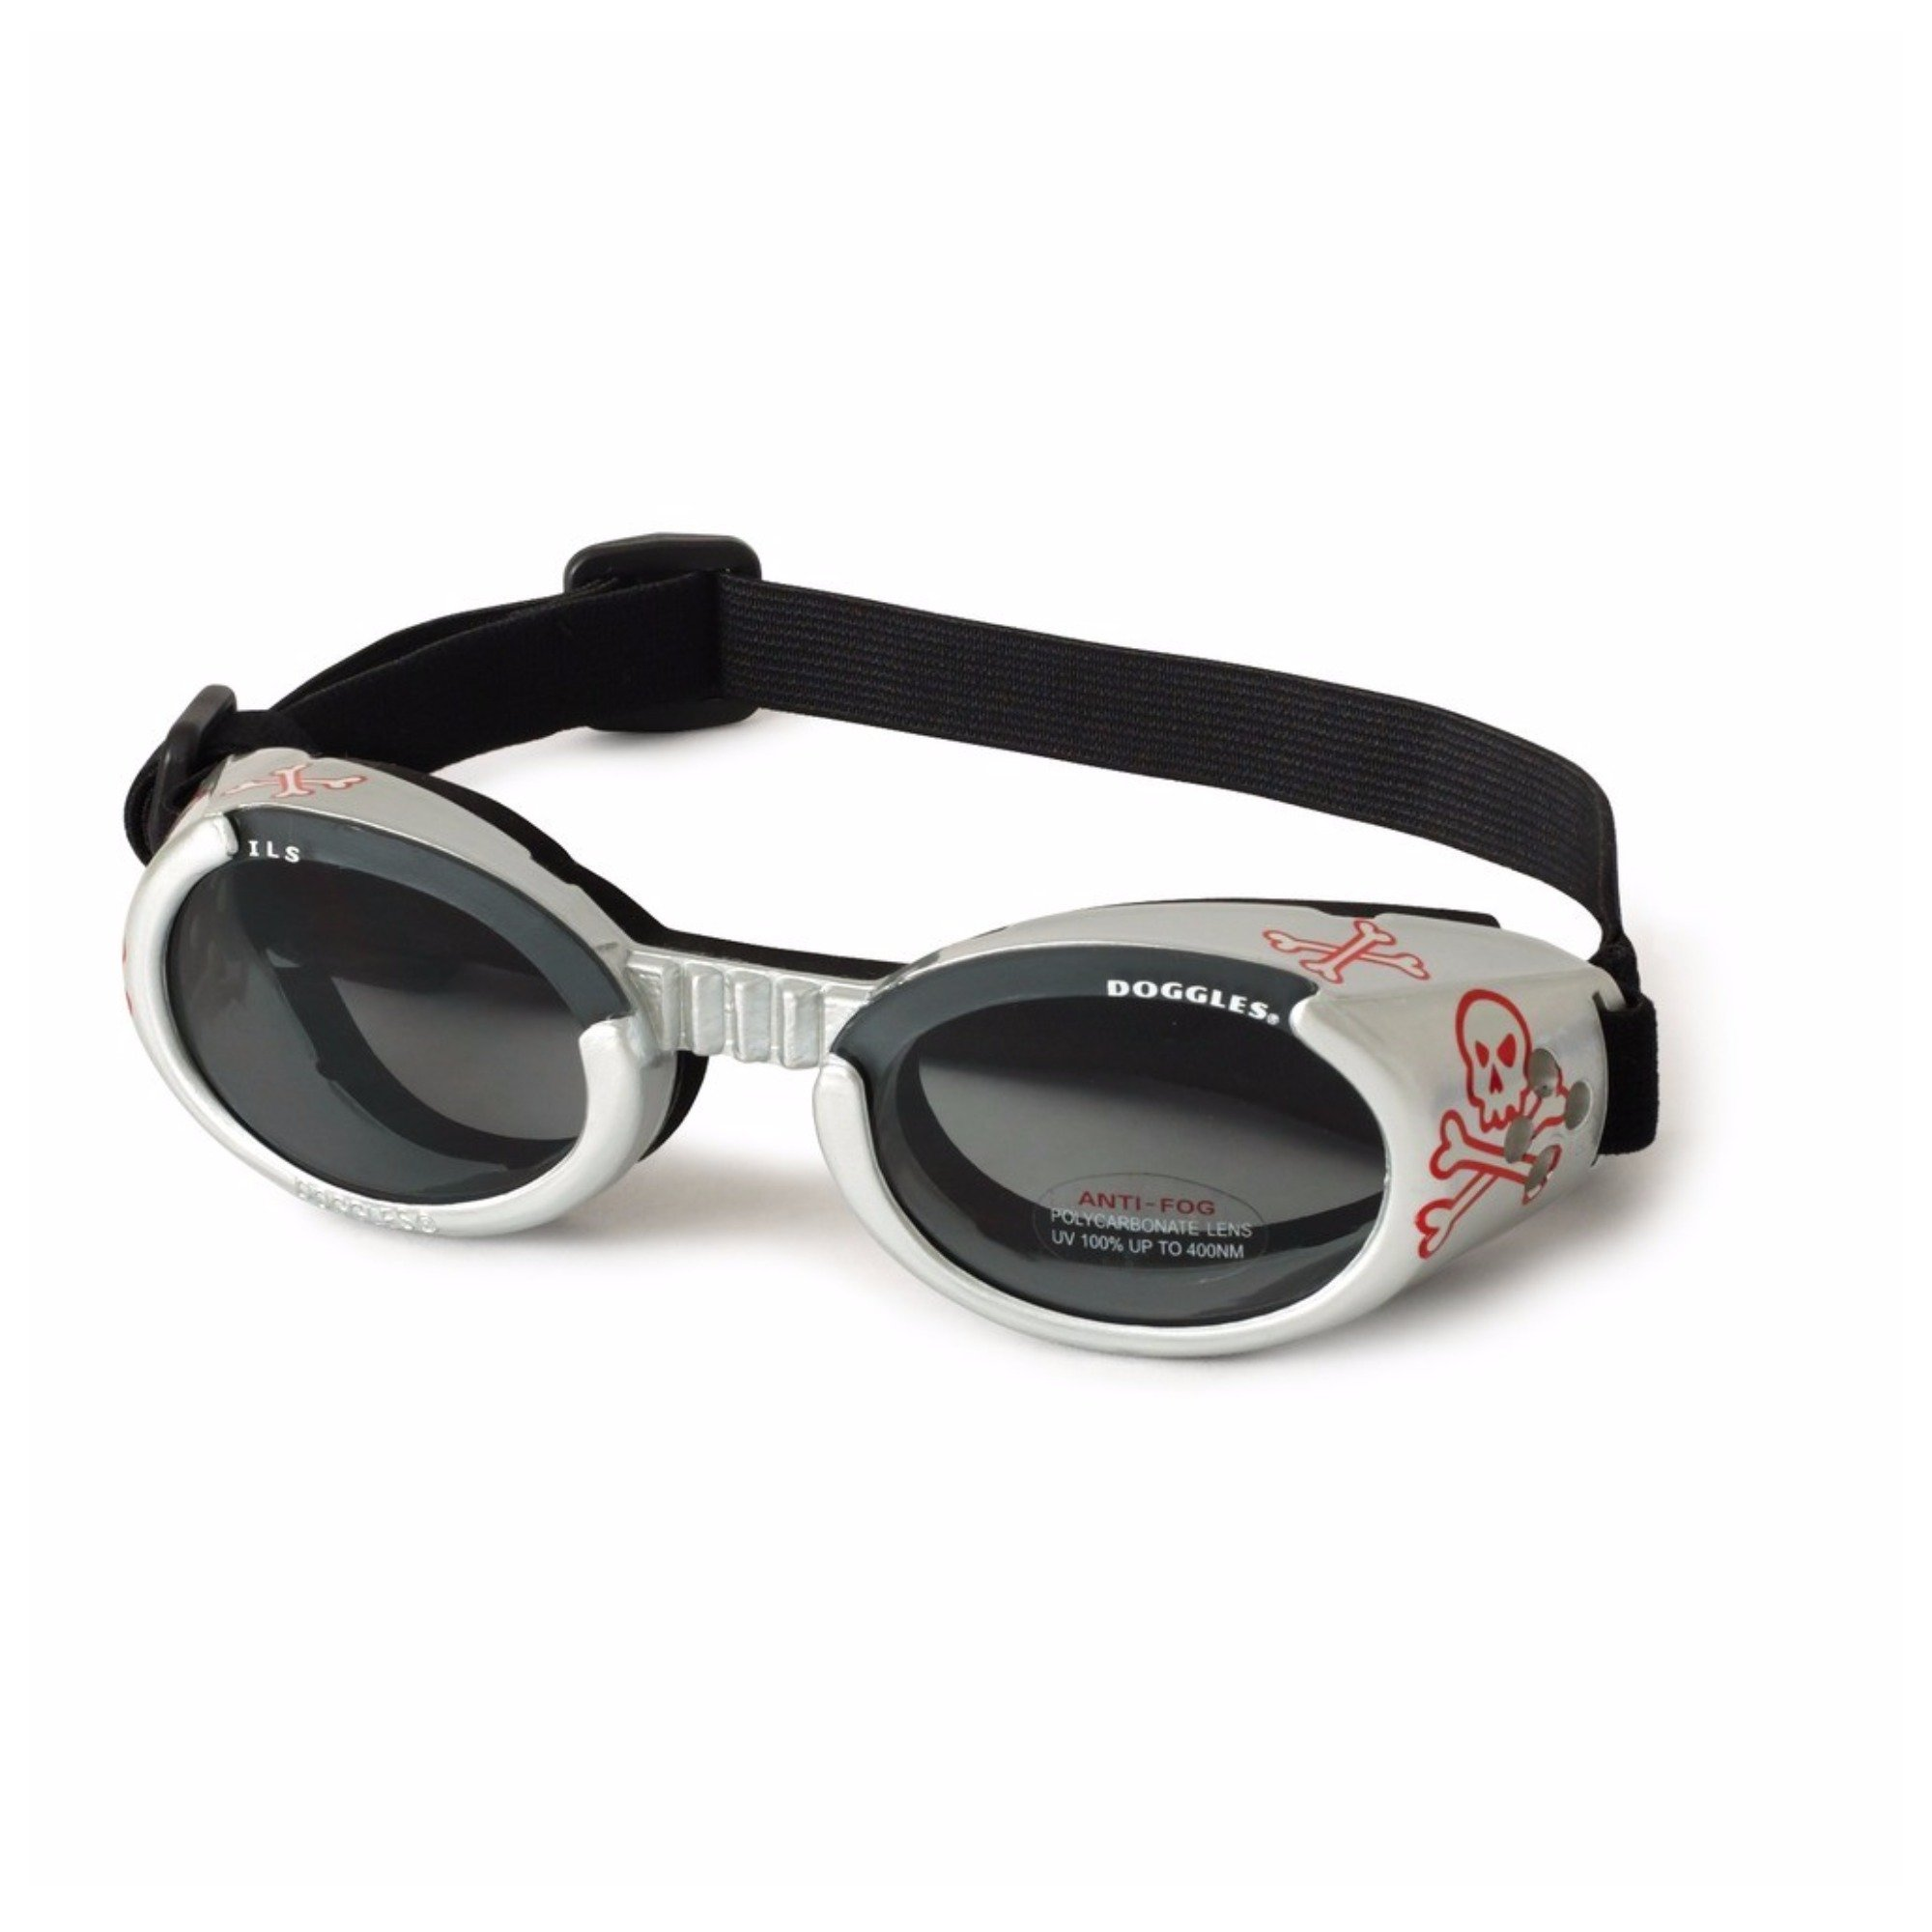 Doggles DODGILLG-13 Doggles - ILS Large Shiny Red Frame with Smoke Lens